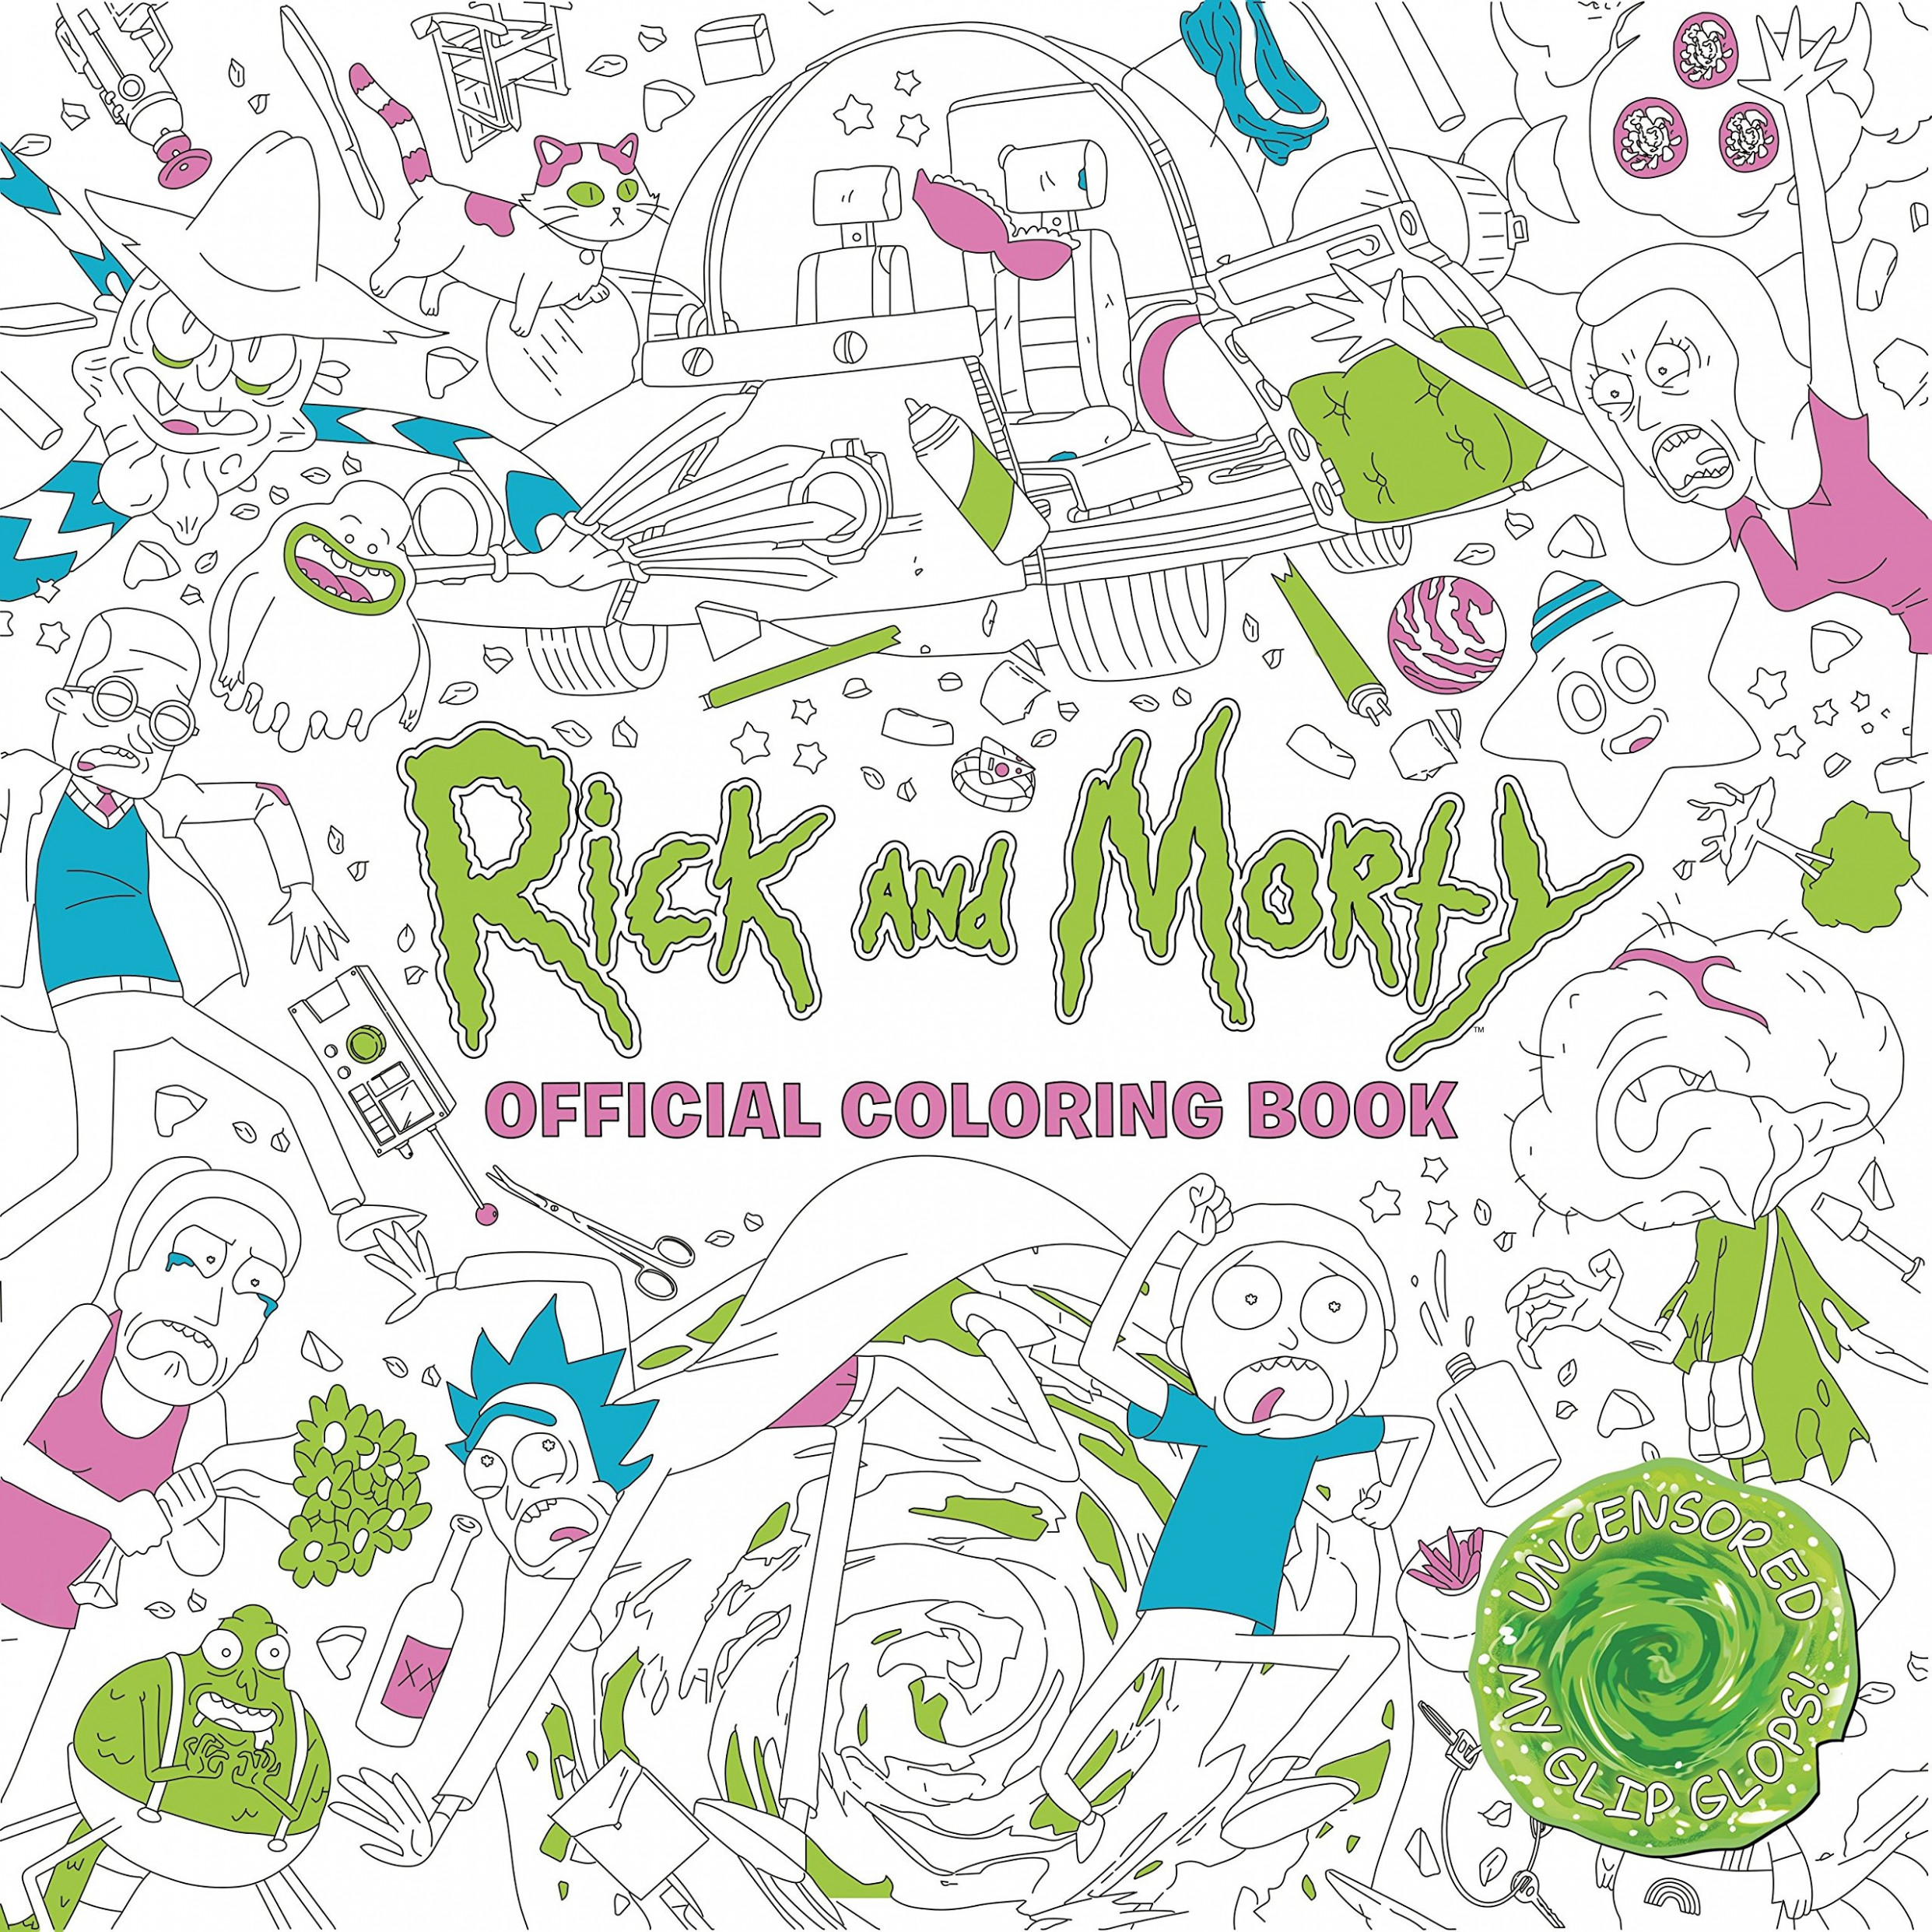 Amazon.com: Rick and Morty Official Coloring Book (18 ...